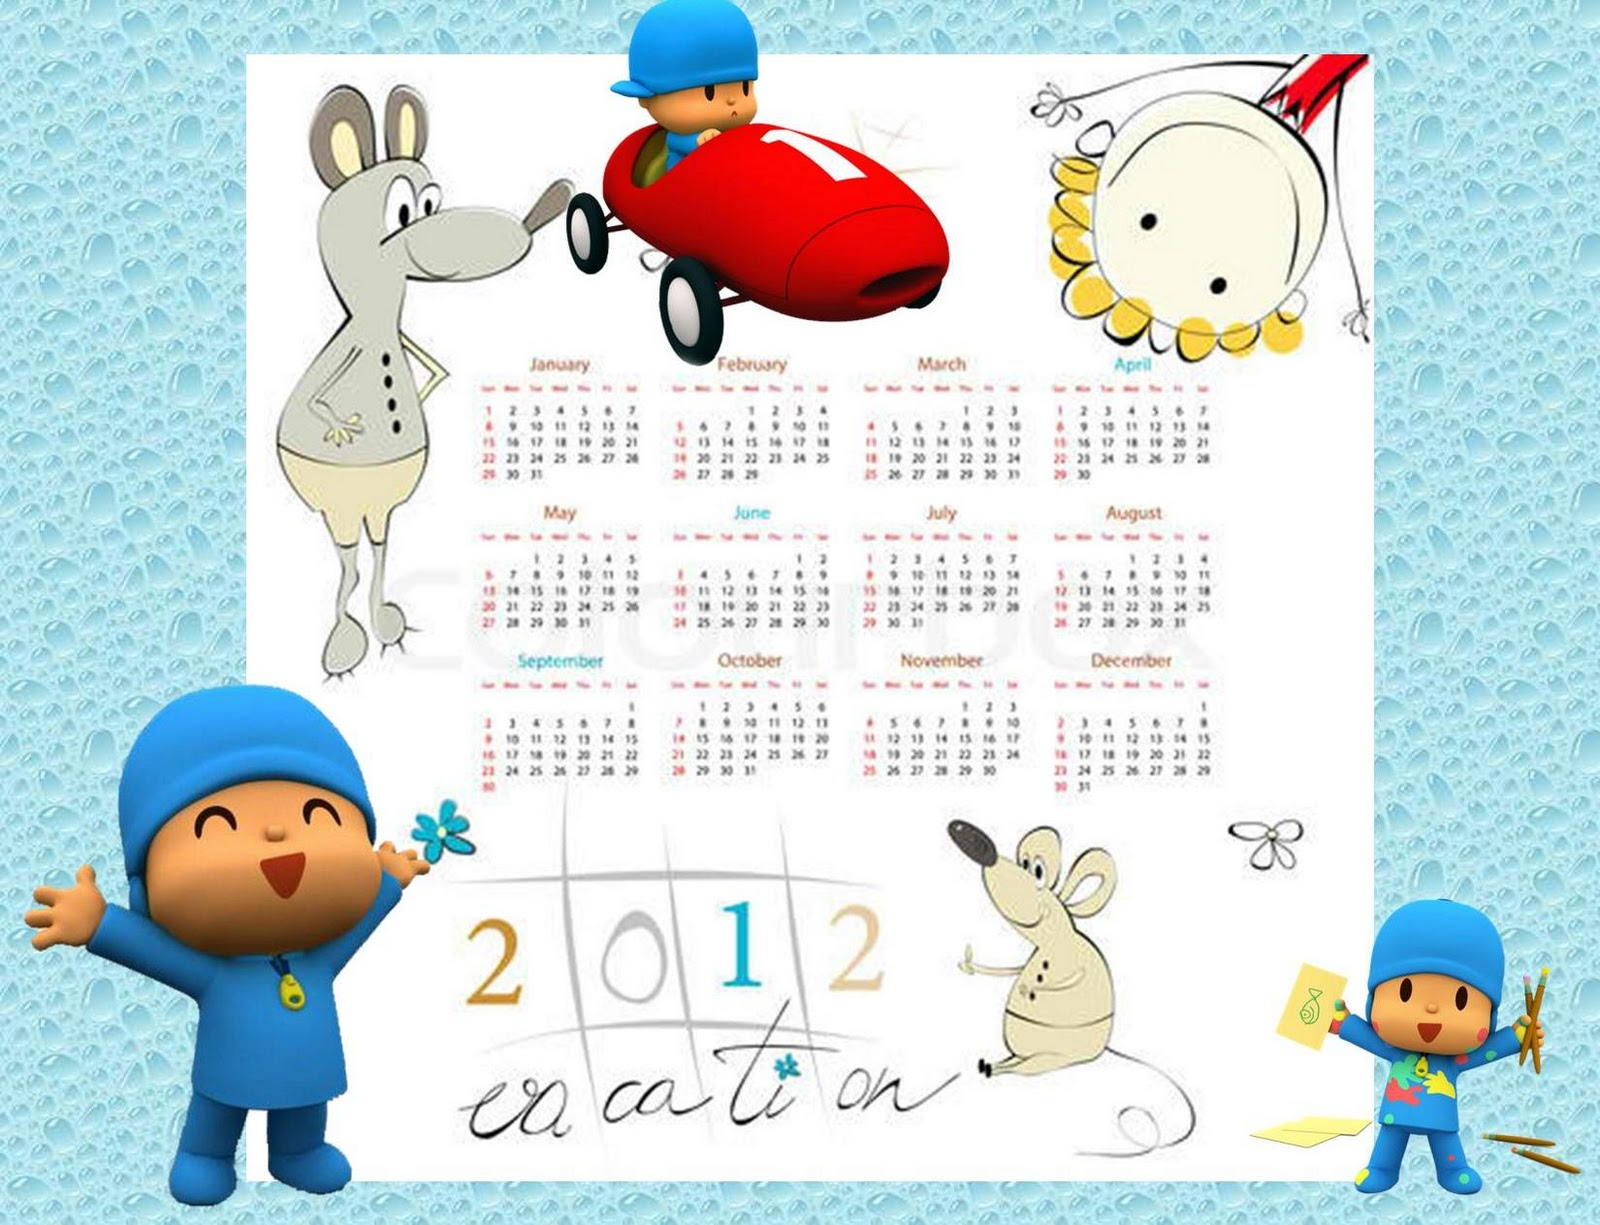 Calendar For Kids To Make : Printable disney calendar for kids how to make your own